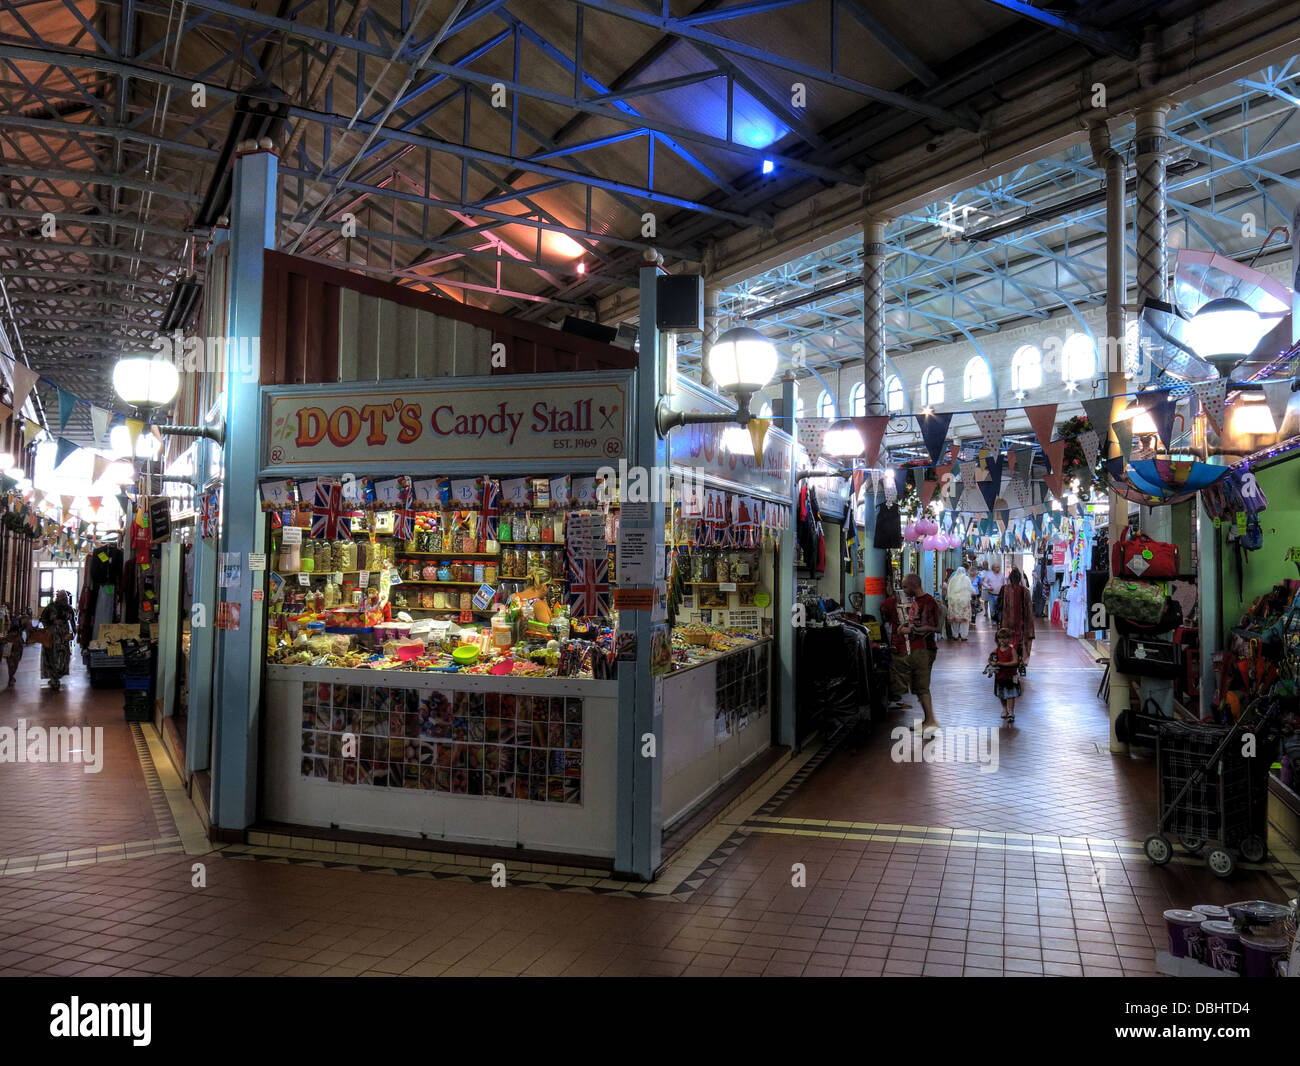 Dots Candy Stall at Longton indoor Market Hall, Stoke on trent , Staffordshire, England, UK - Stock Image